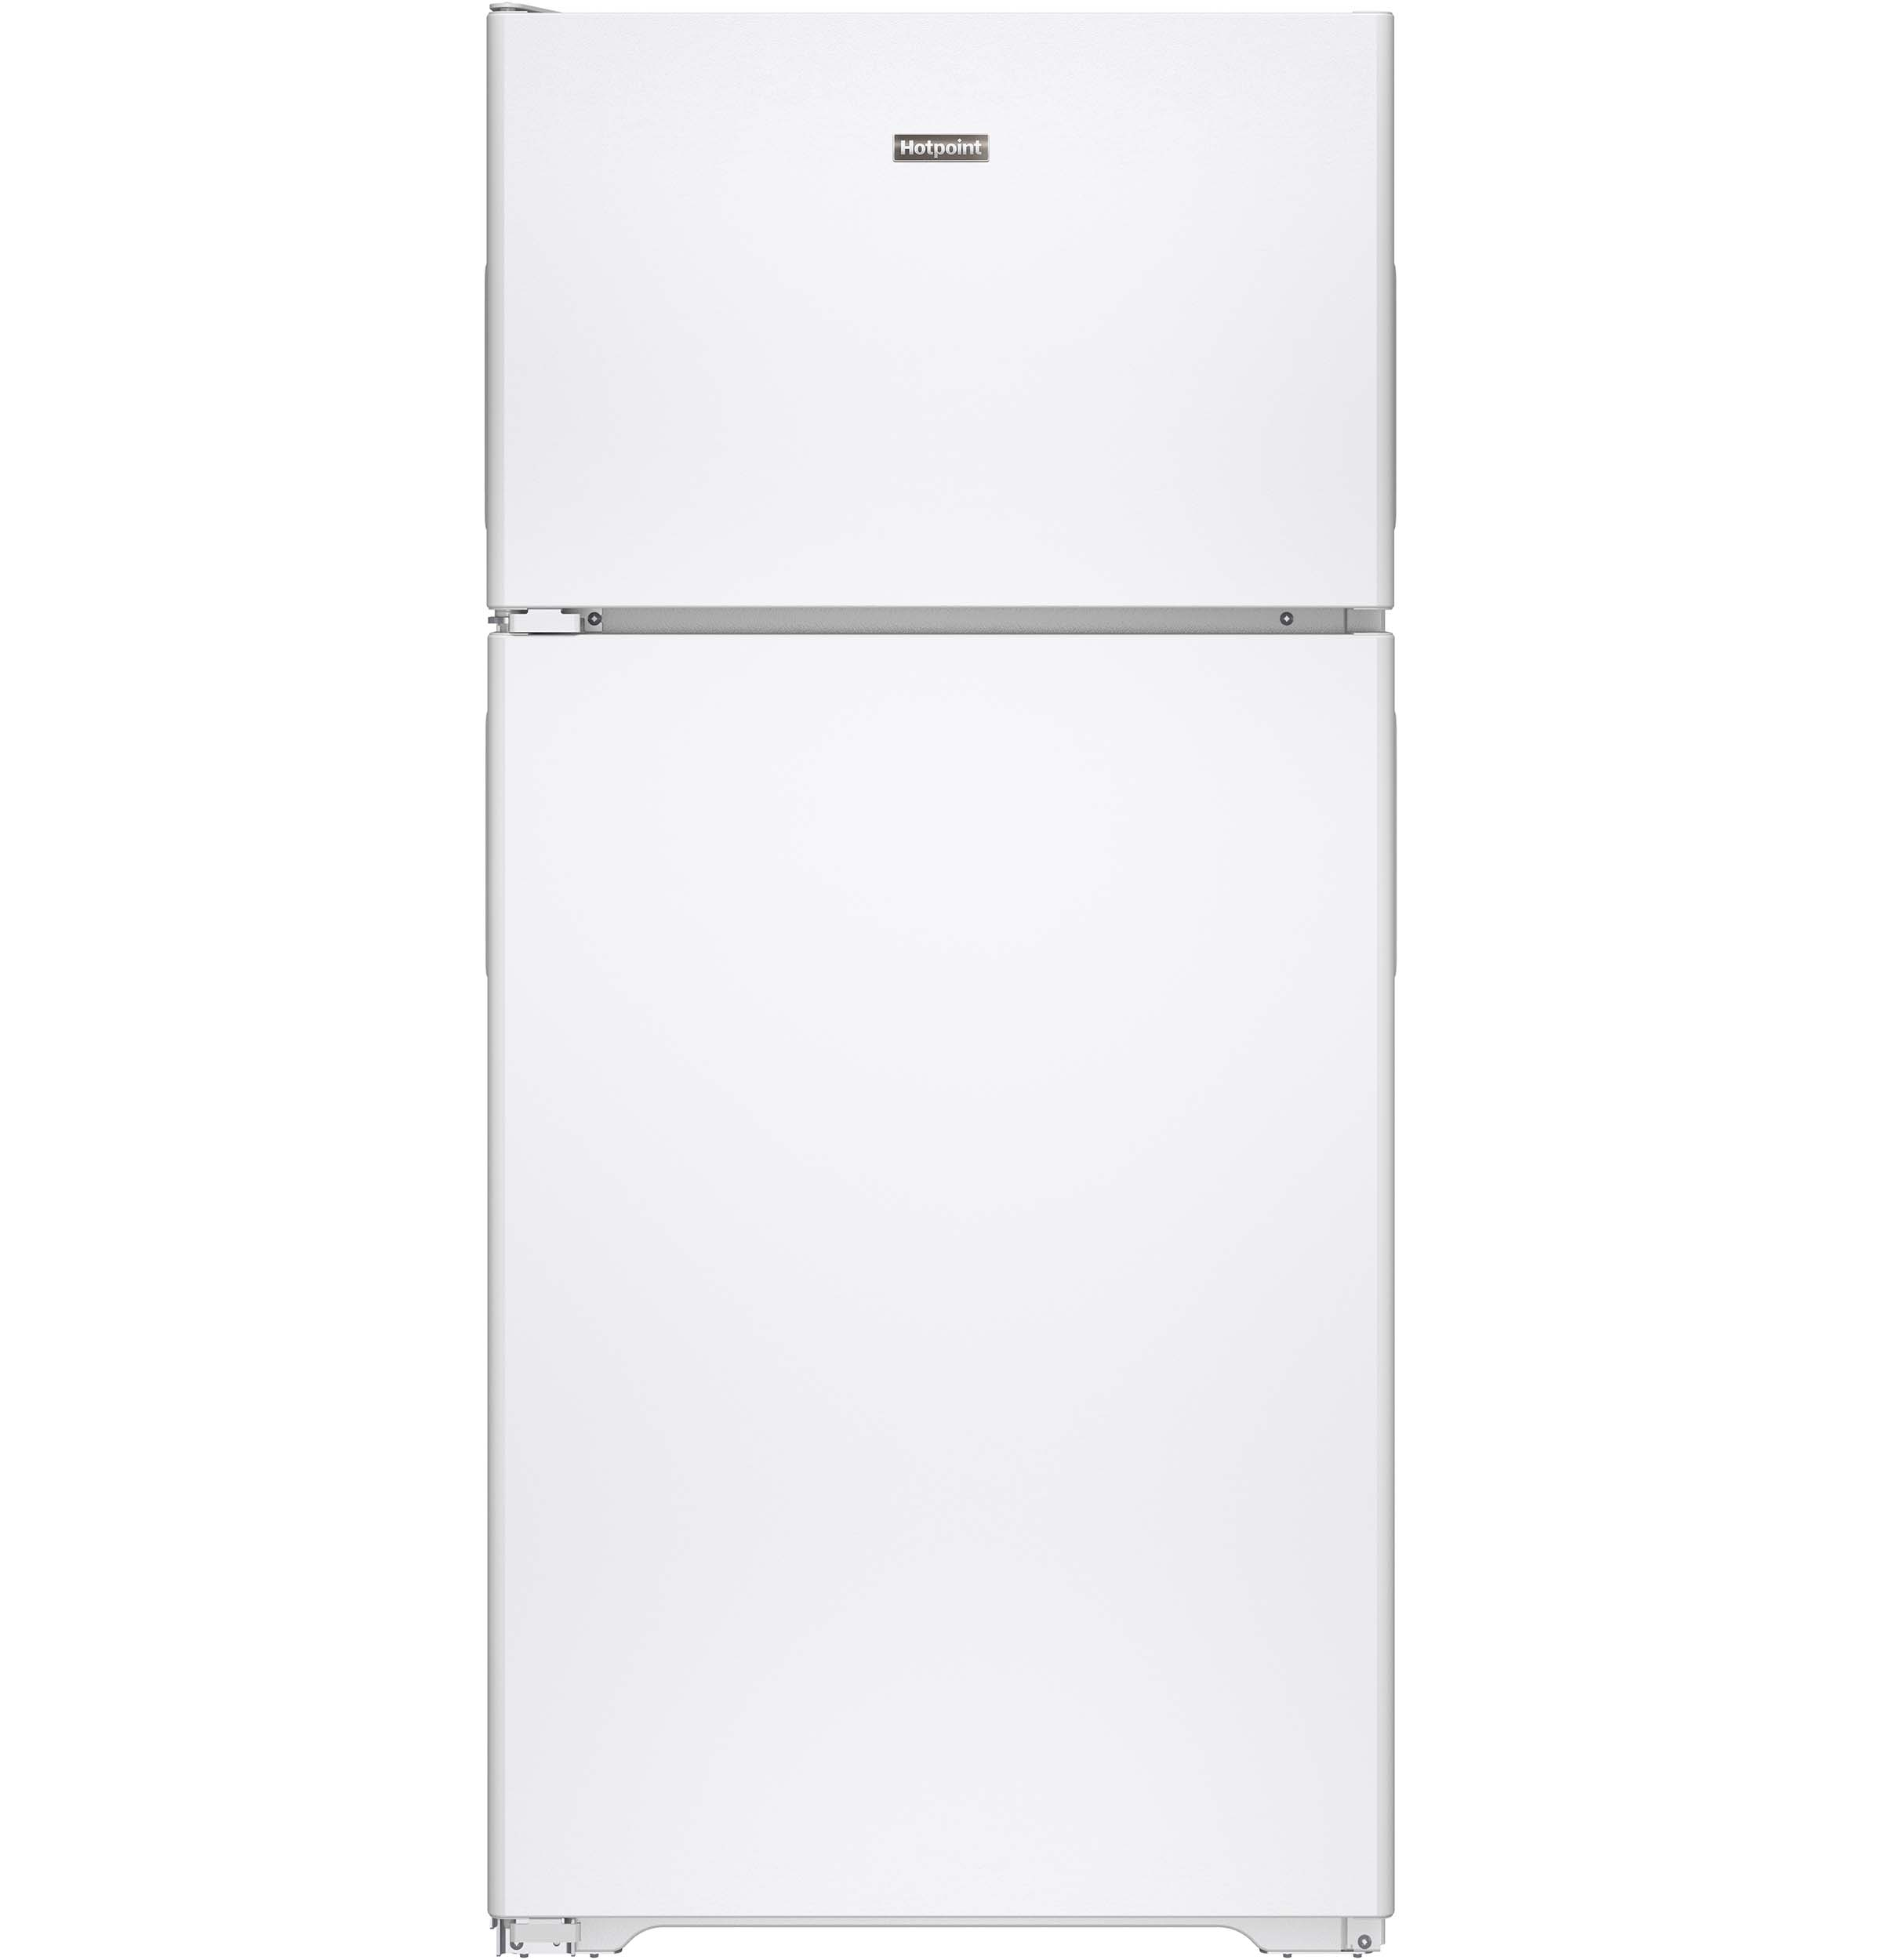 Hotpoint Hotpoint® 14.6 Cu. Ft. Recessed Handle Top-Freezer Refrigerator